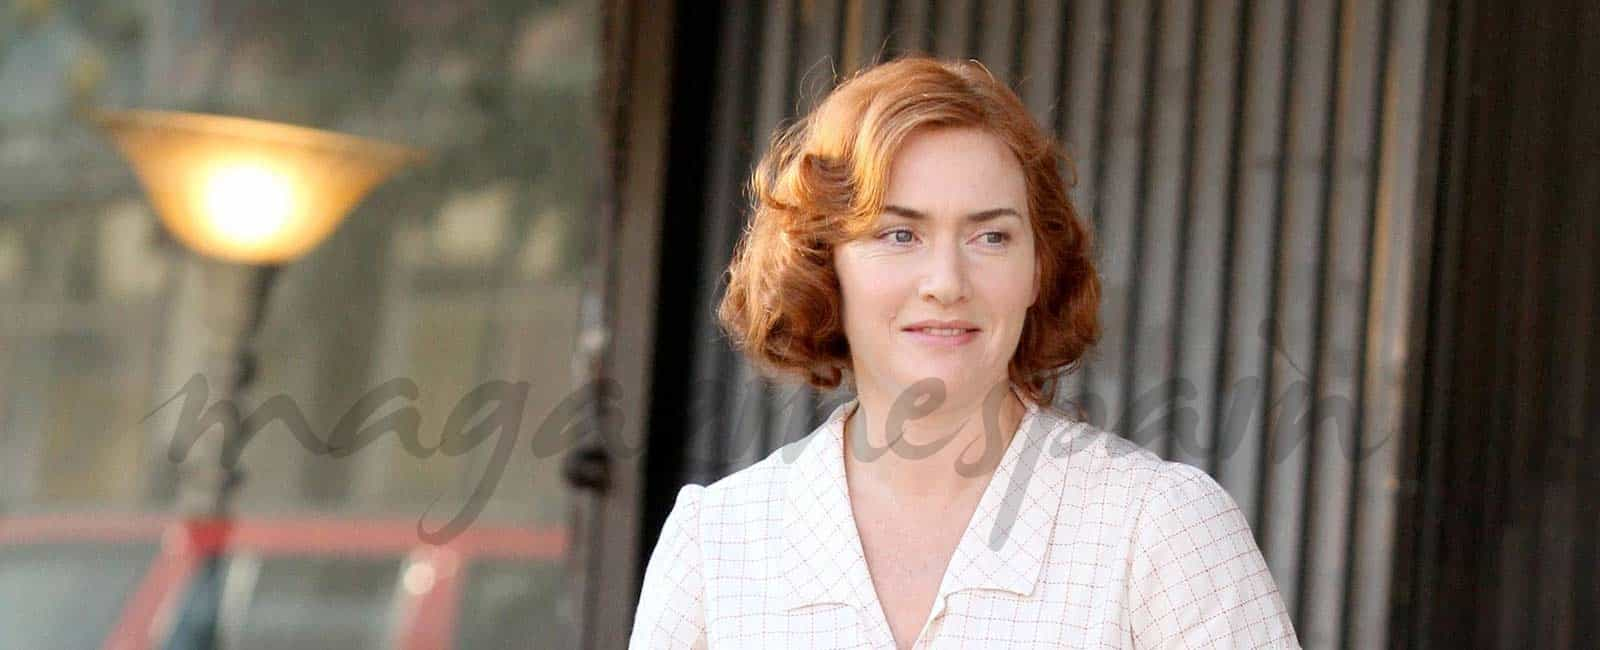 Kate Winslet y Justin Timberlake vuelven a los 50